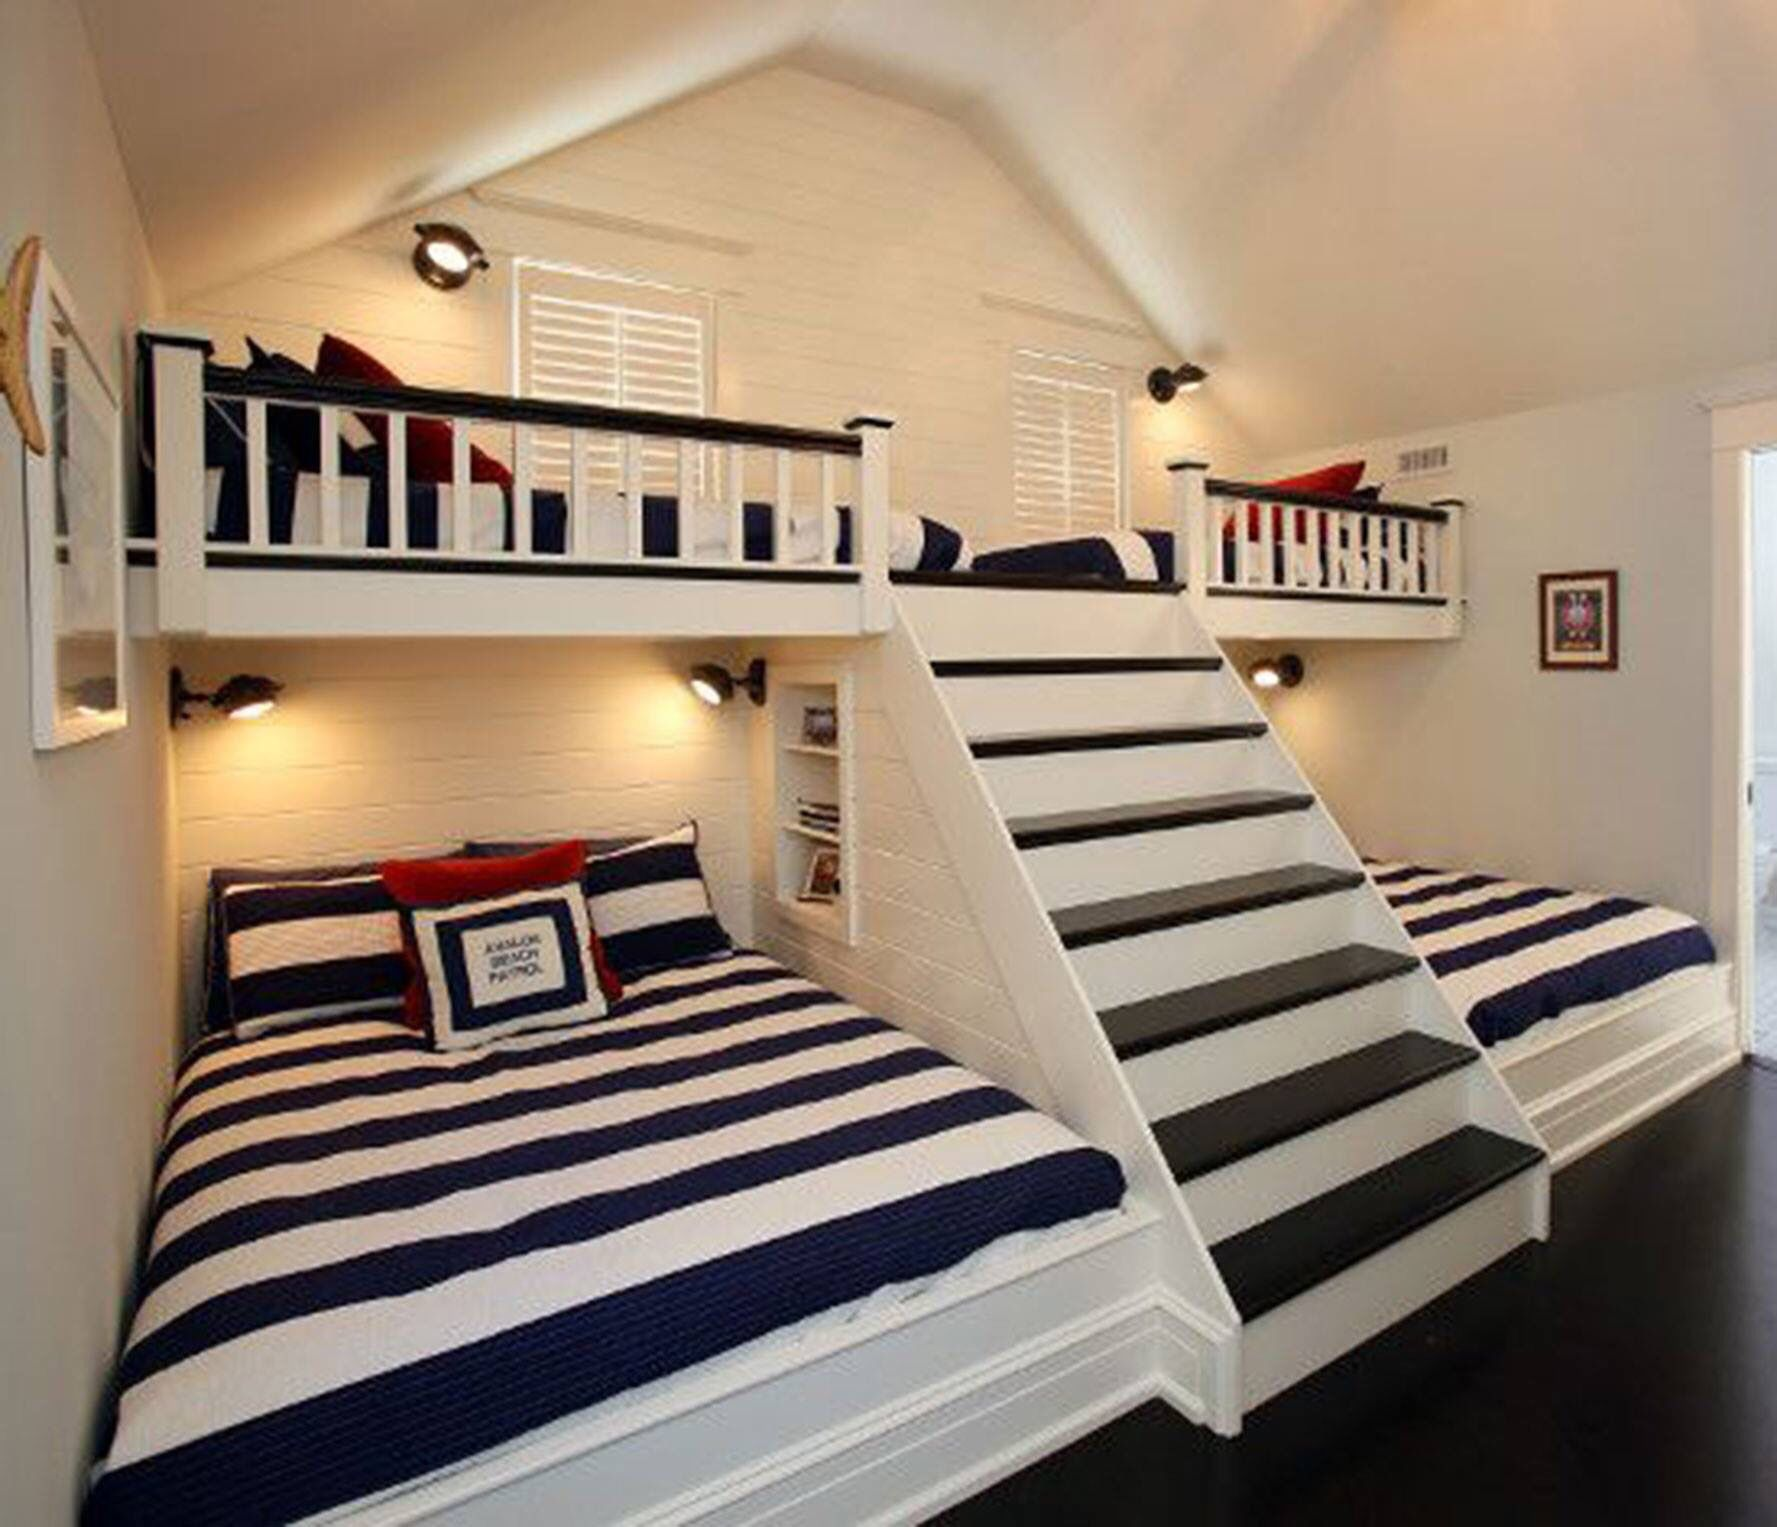 Custom 4 Beds In A Room Double Beds With Stairs To Bunk Great From A Cabin A Summer Home Kids Room Gir Bedroom Design Bunk Bed Designs Bunk Beds With Stairs